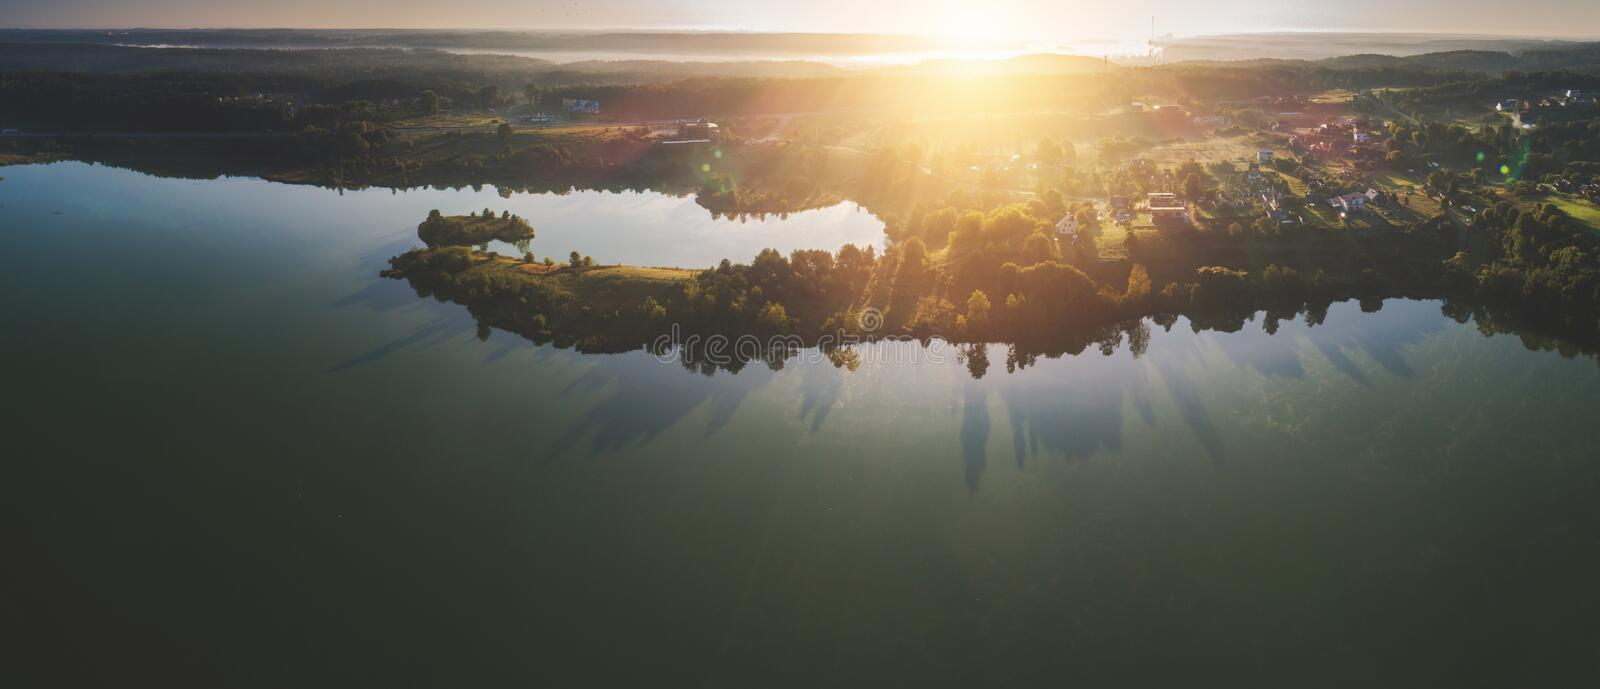 Scenic aerial landscape of lake at sunrise stock images